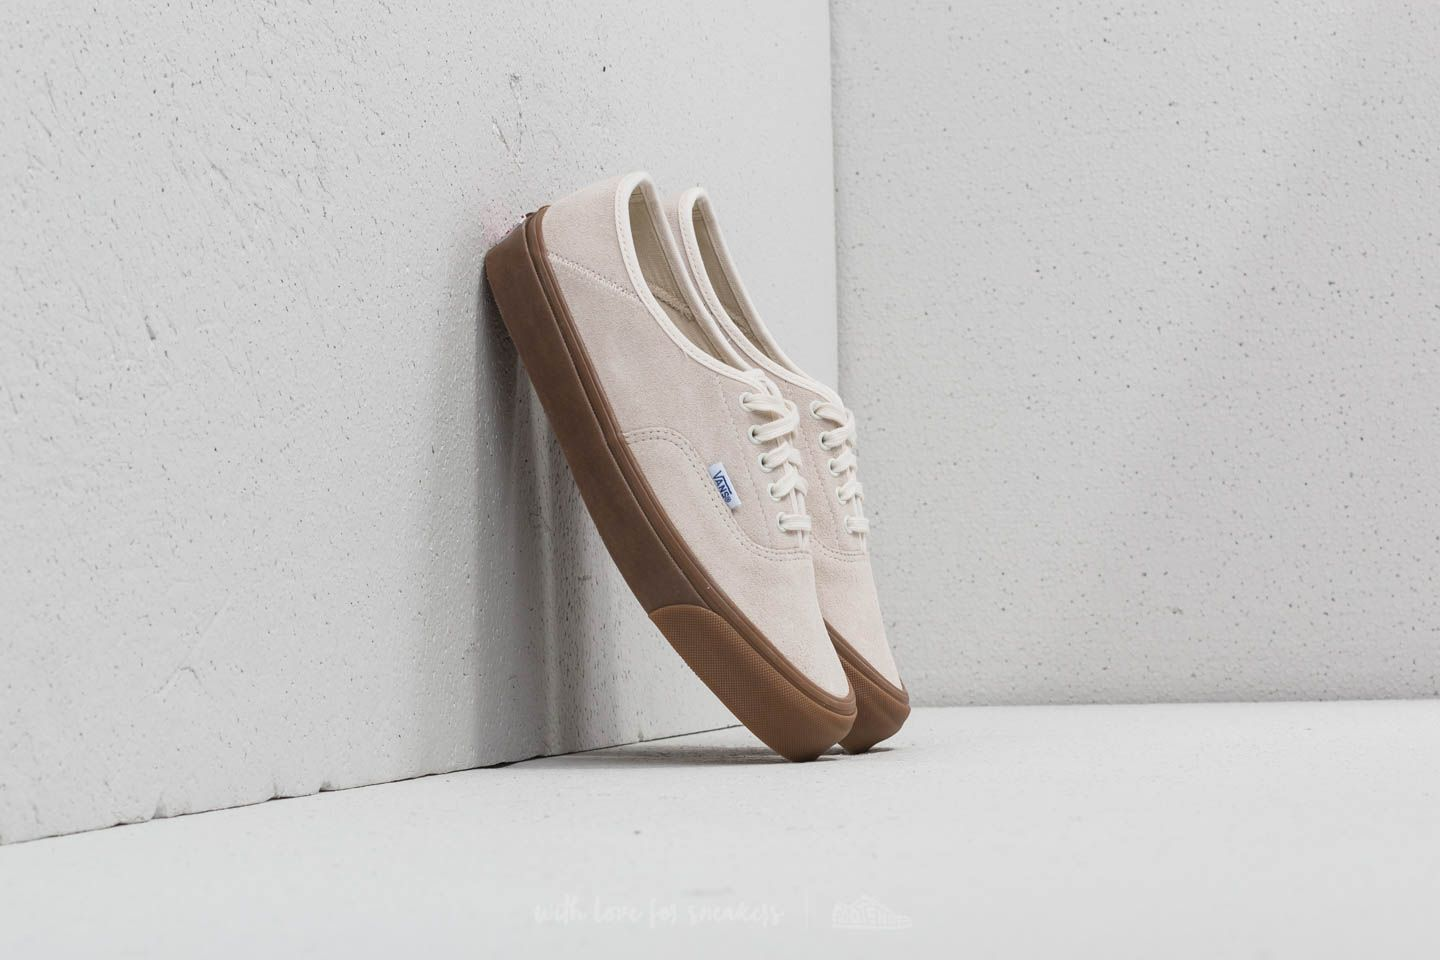 6acd6d05b8 Vans OG Style 43 LX (Suede) Sugar Swizzle  Light Gum at a great